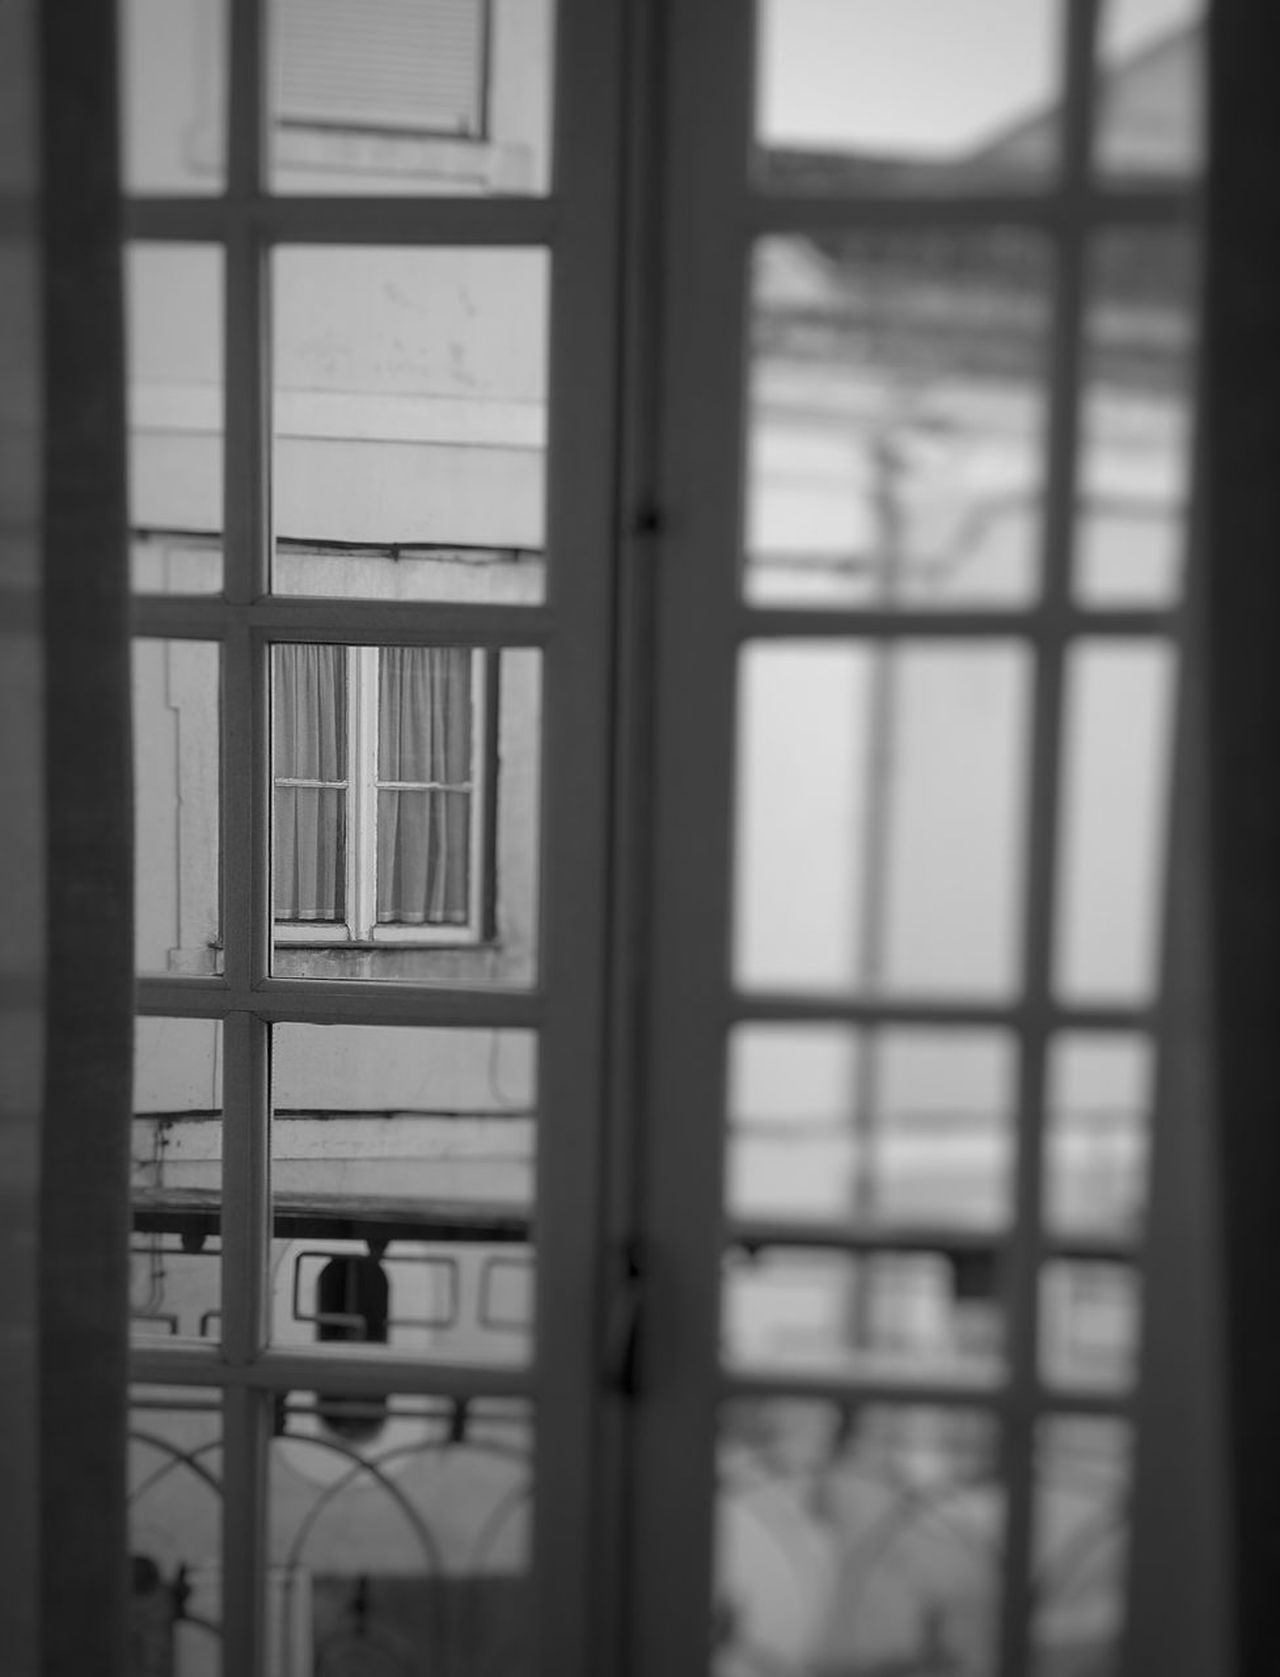 Window Indoors  Looking Through Window Prison Cage No People Day Security Bar Trapped Close-up Old Buildings Details Photooftheday Blackandwhite Courtains City High Historical Building Leiria City Life Street Secret Eyeemfirstphoto EyeEm Best Shots Architecture